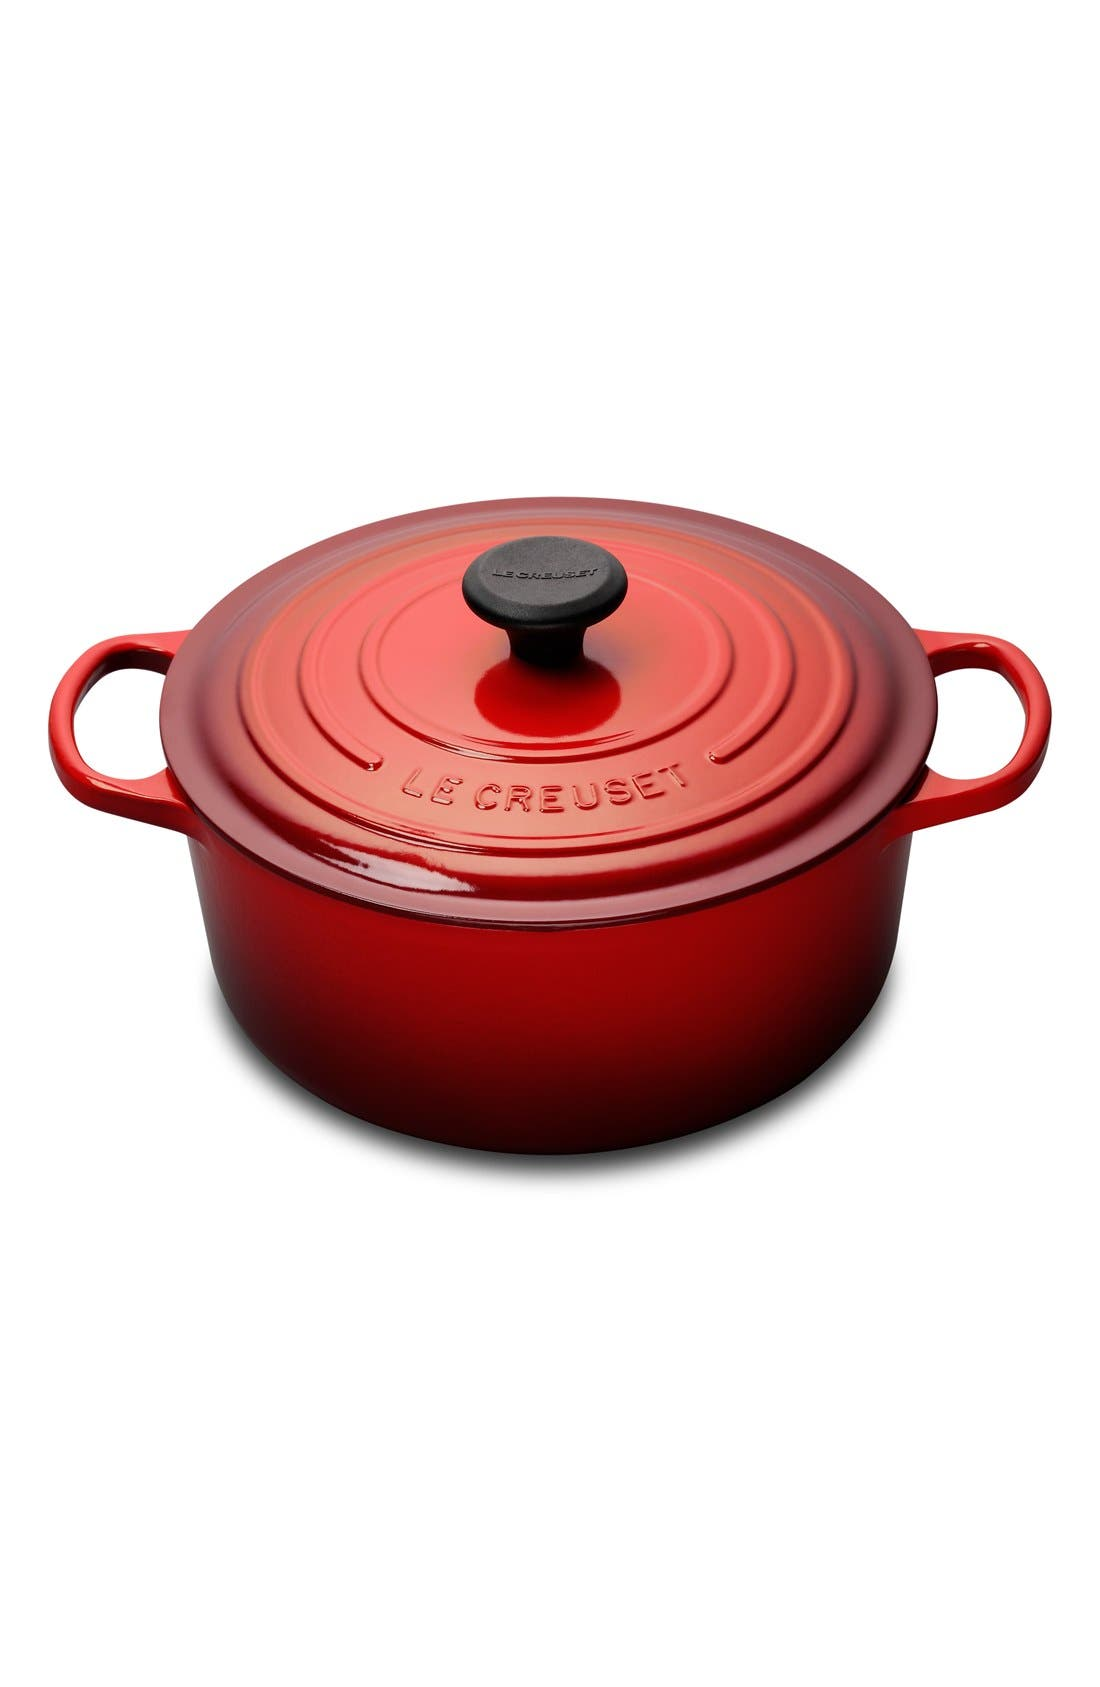 Alternate Image 1 Selected - Le Creuset Signature 5 1/2 Quart Round Enamel Cast Iron French/Dutch Oven